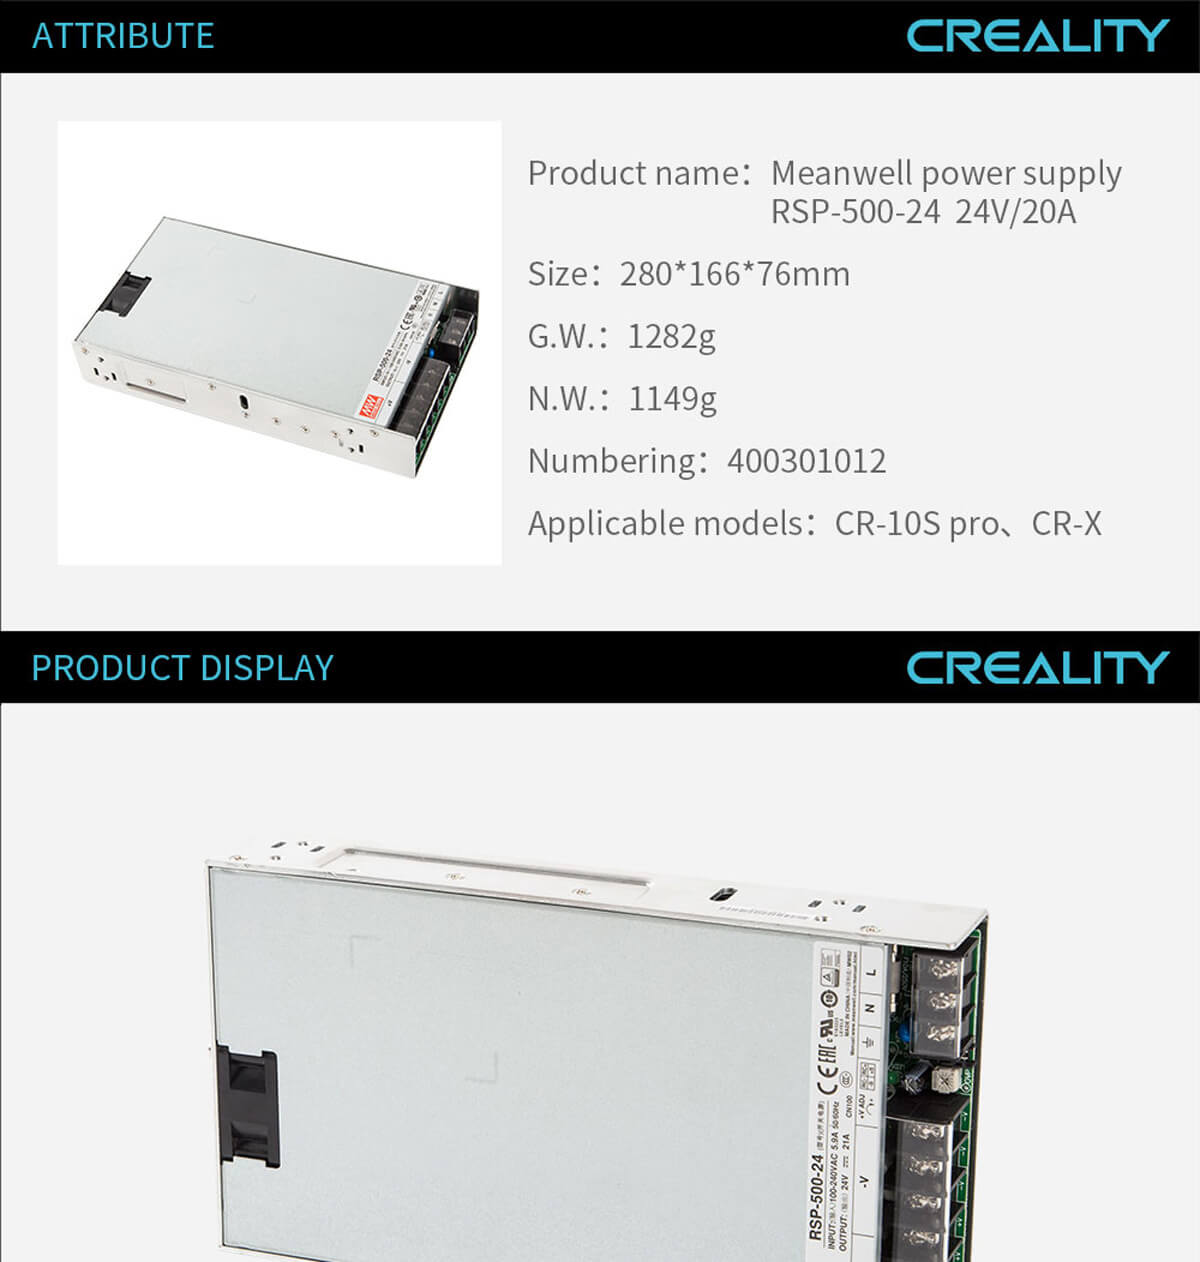 creality-3d-printer-Meanwell-Power-Supply-RSP-500-24-24V20A-11